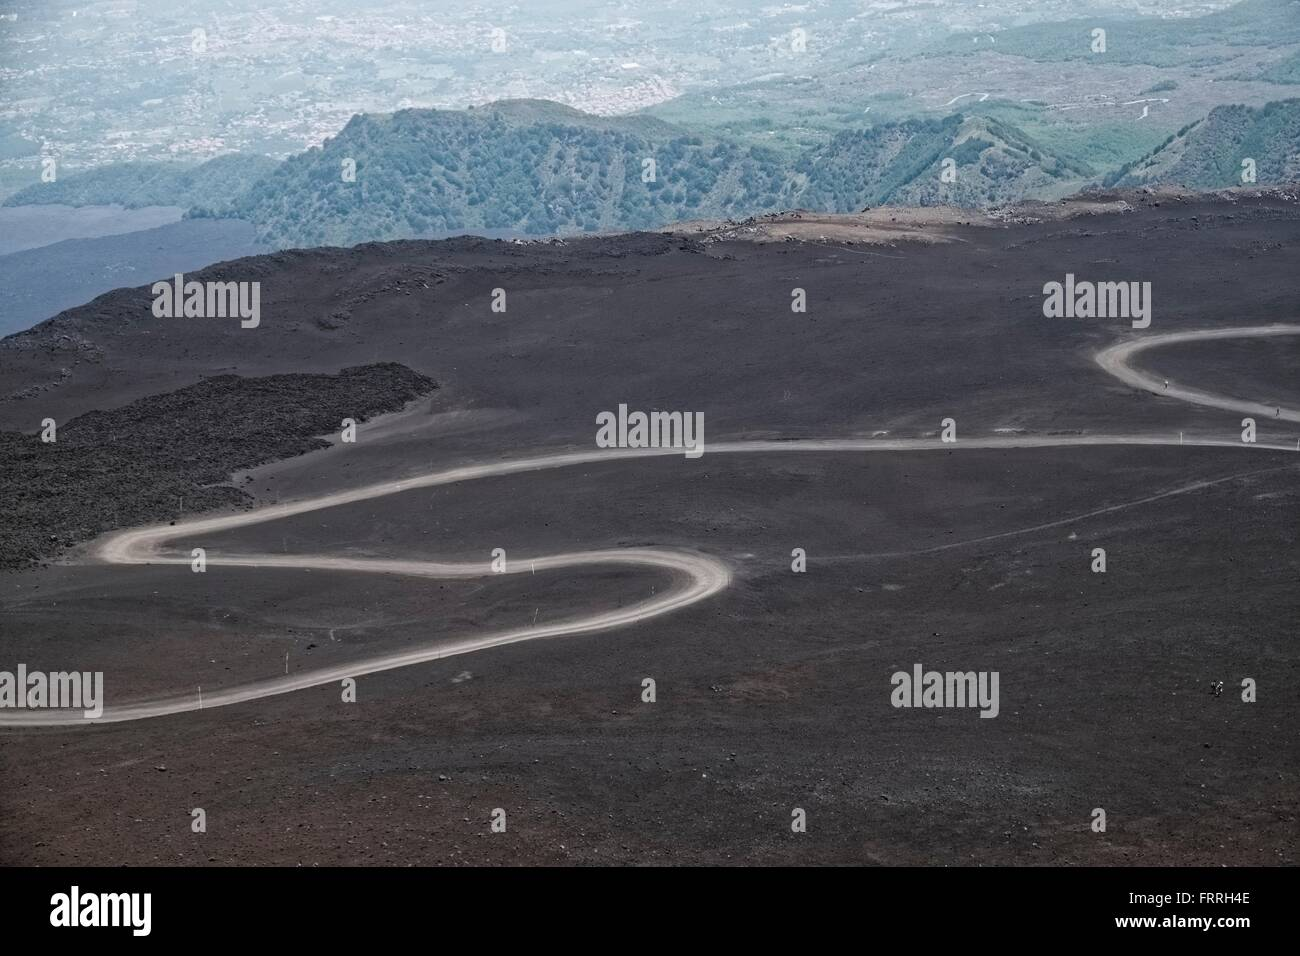 Italy, Sicily, Mt Etna: Volcanic landscape with winding dusty road - Stock Image